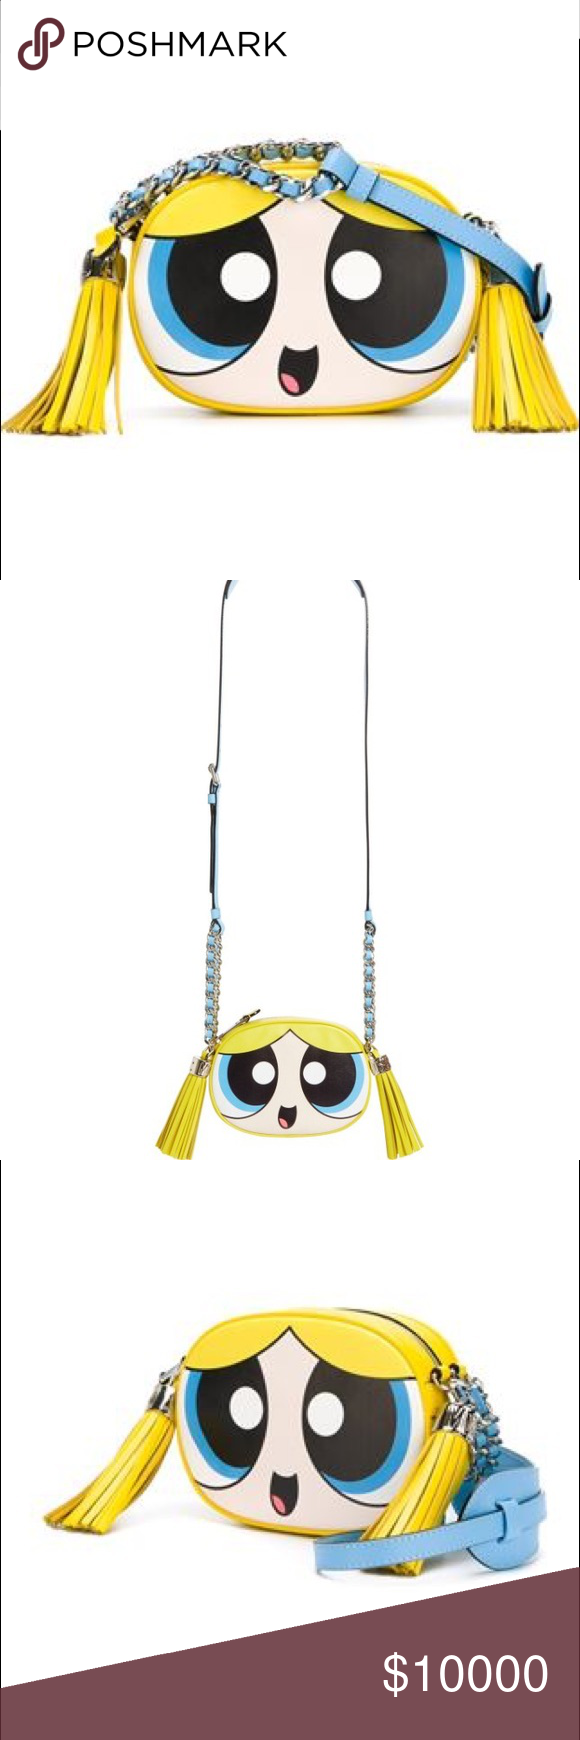 d0fcb2019aa Looking for Moschino Powerpuff Girls Bubbles purse ISO Moschino bubbles  powerpuff girls purse! Can be brand new or slightly used! Must be 325$ to  buy!